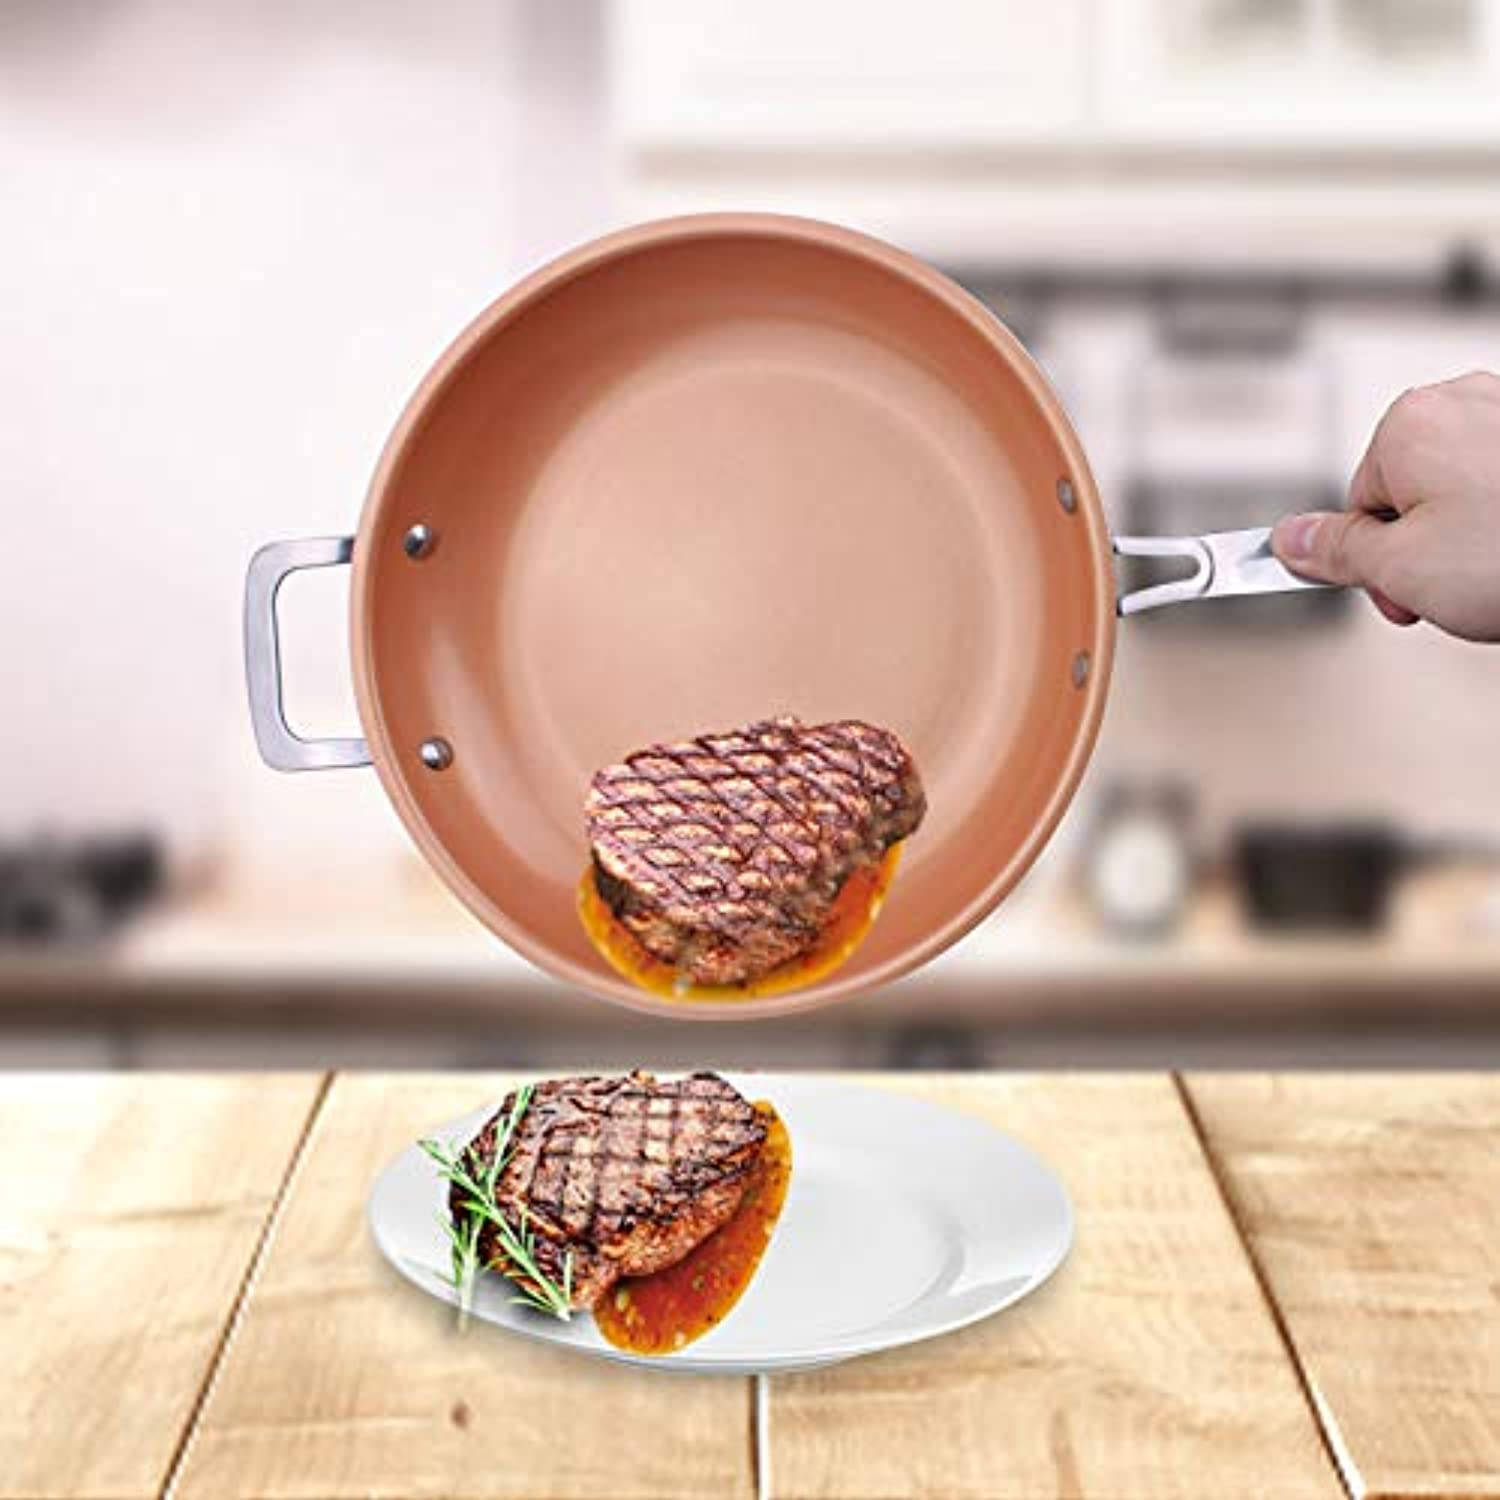 Farmerly Non-Stick Copper Frying Pan Ceramic Induction Skillet Copper Red Pan Saucepan Oven & Dishwasher Safe 12 Inches Nonstick Skillet   12inch 2.0mm